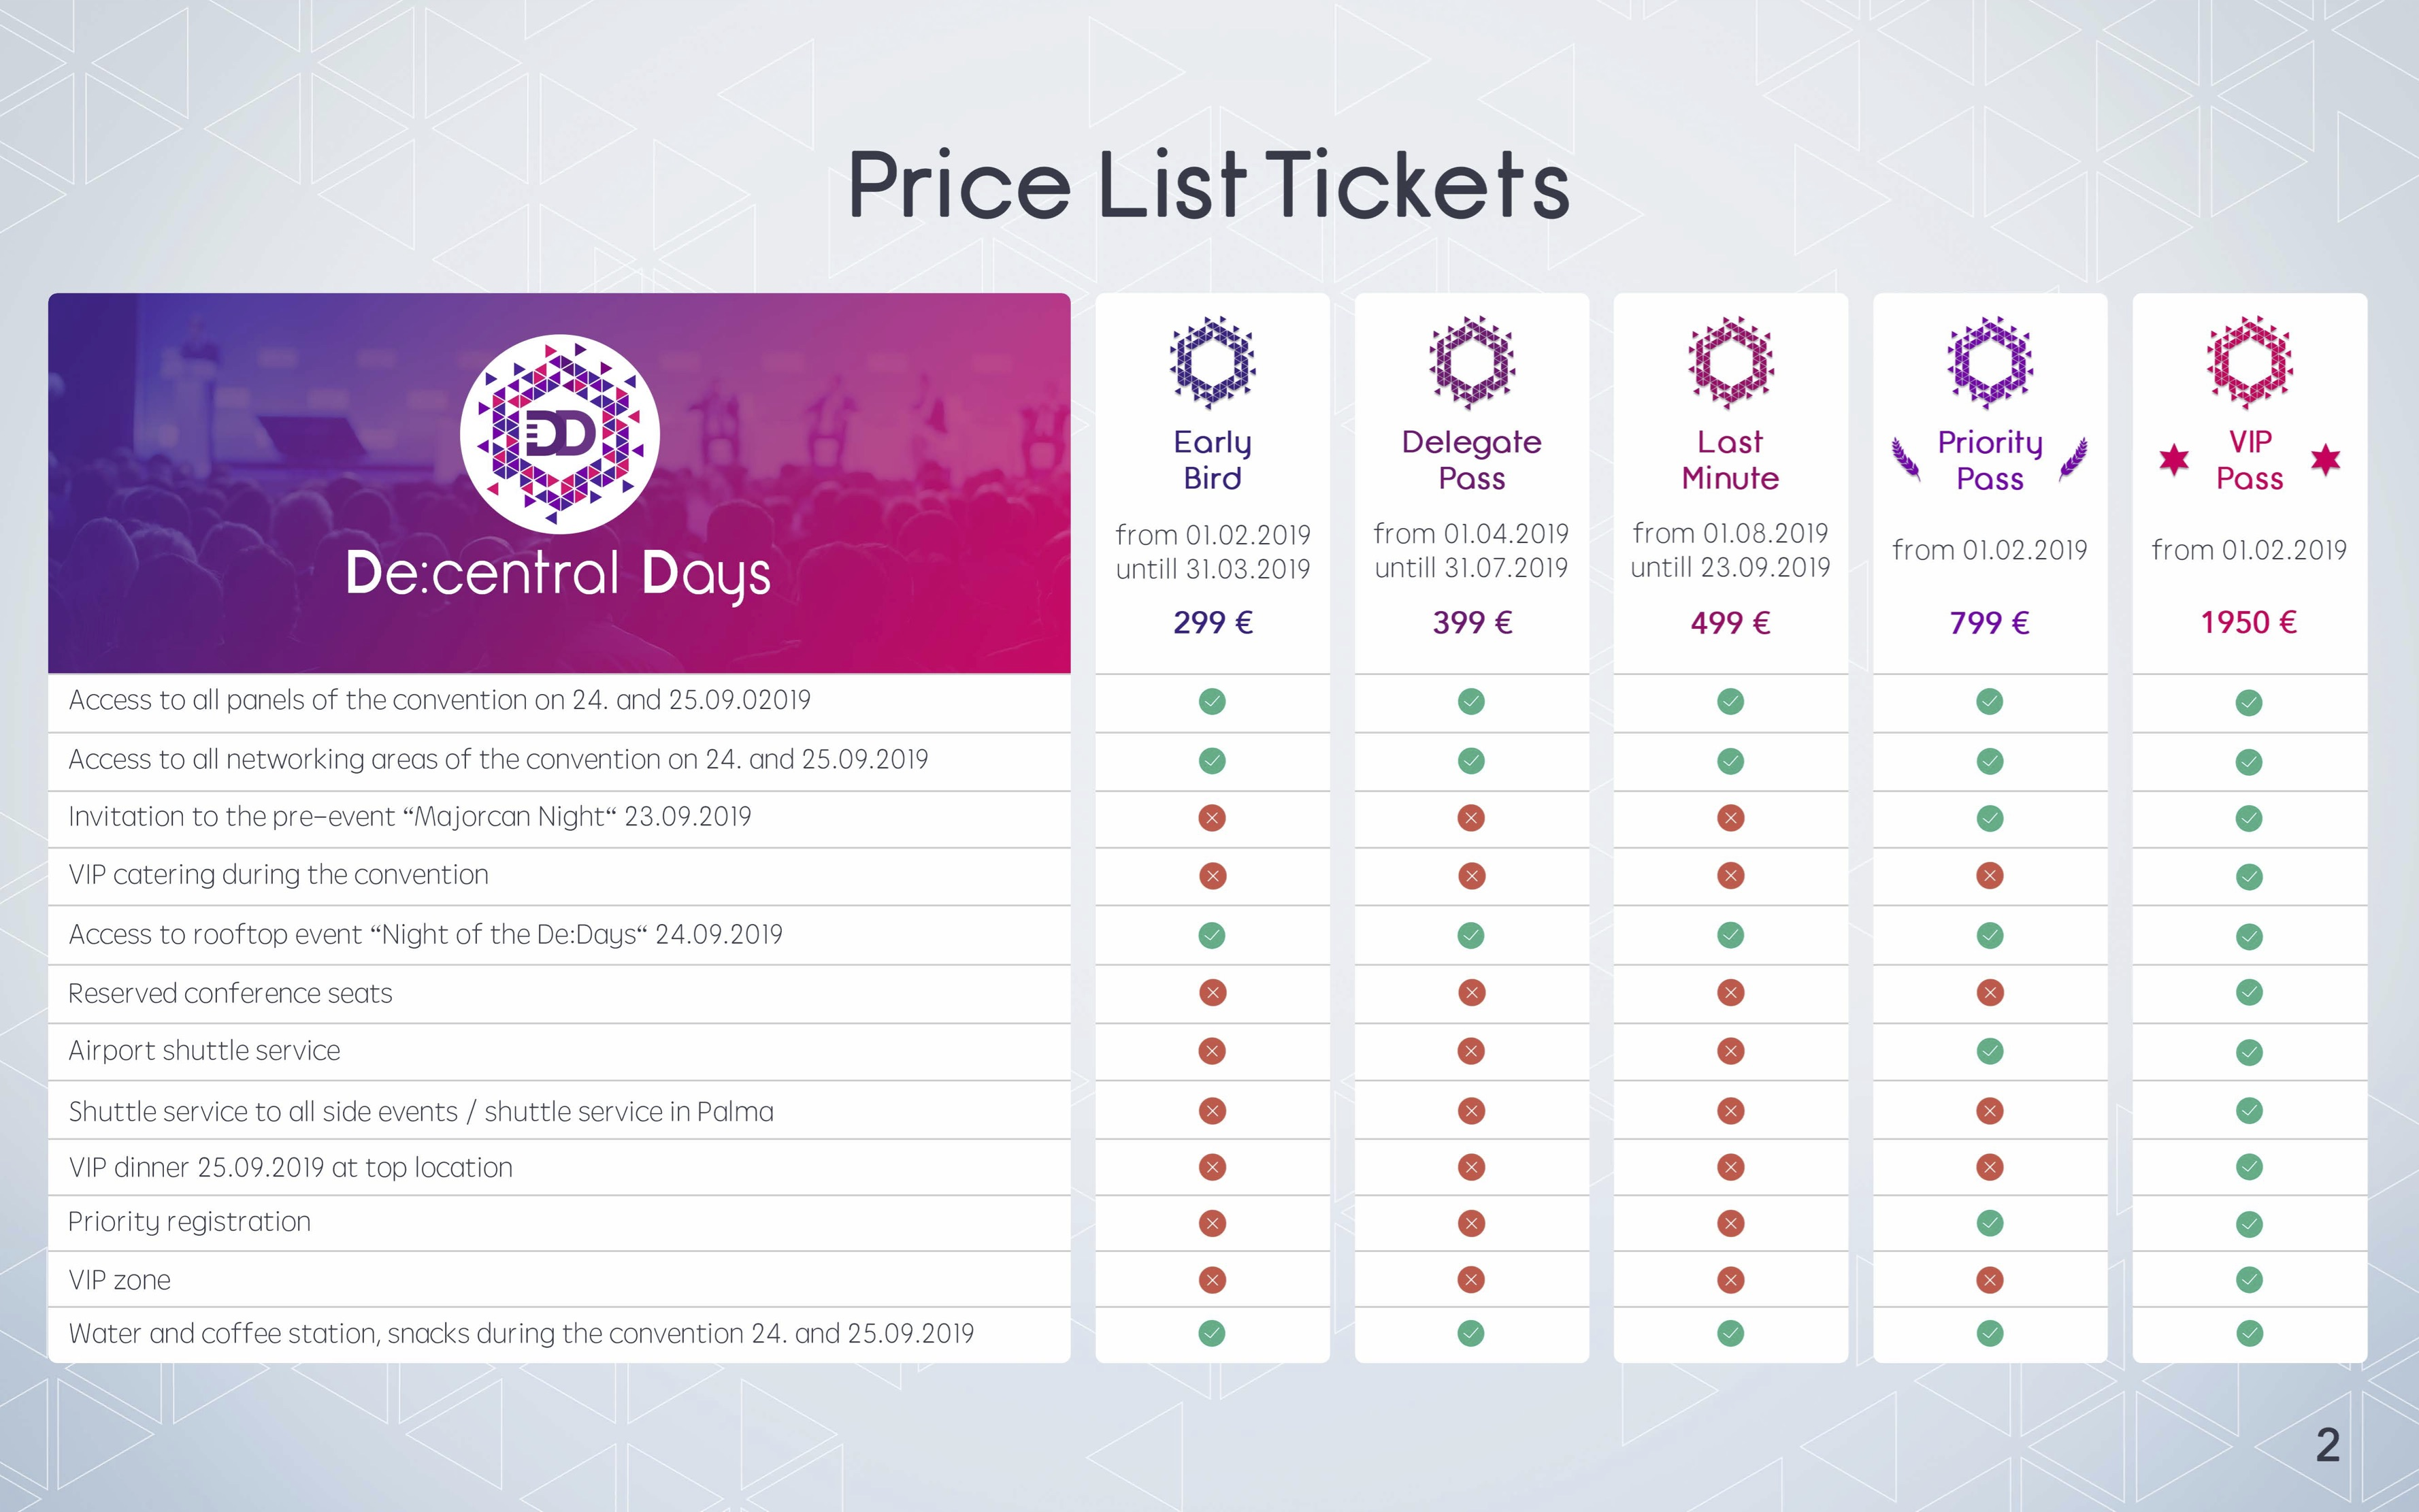 Price List Tickets